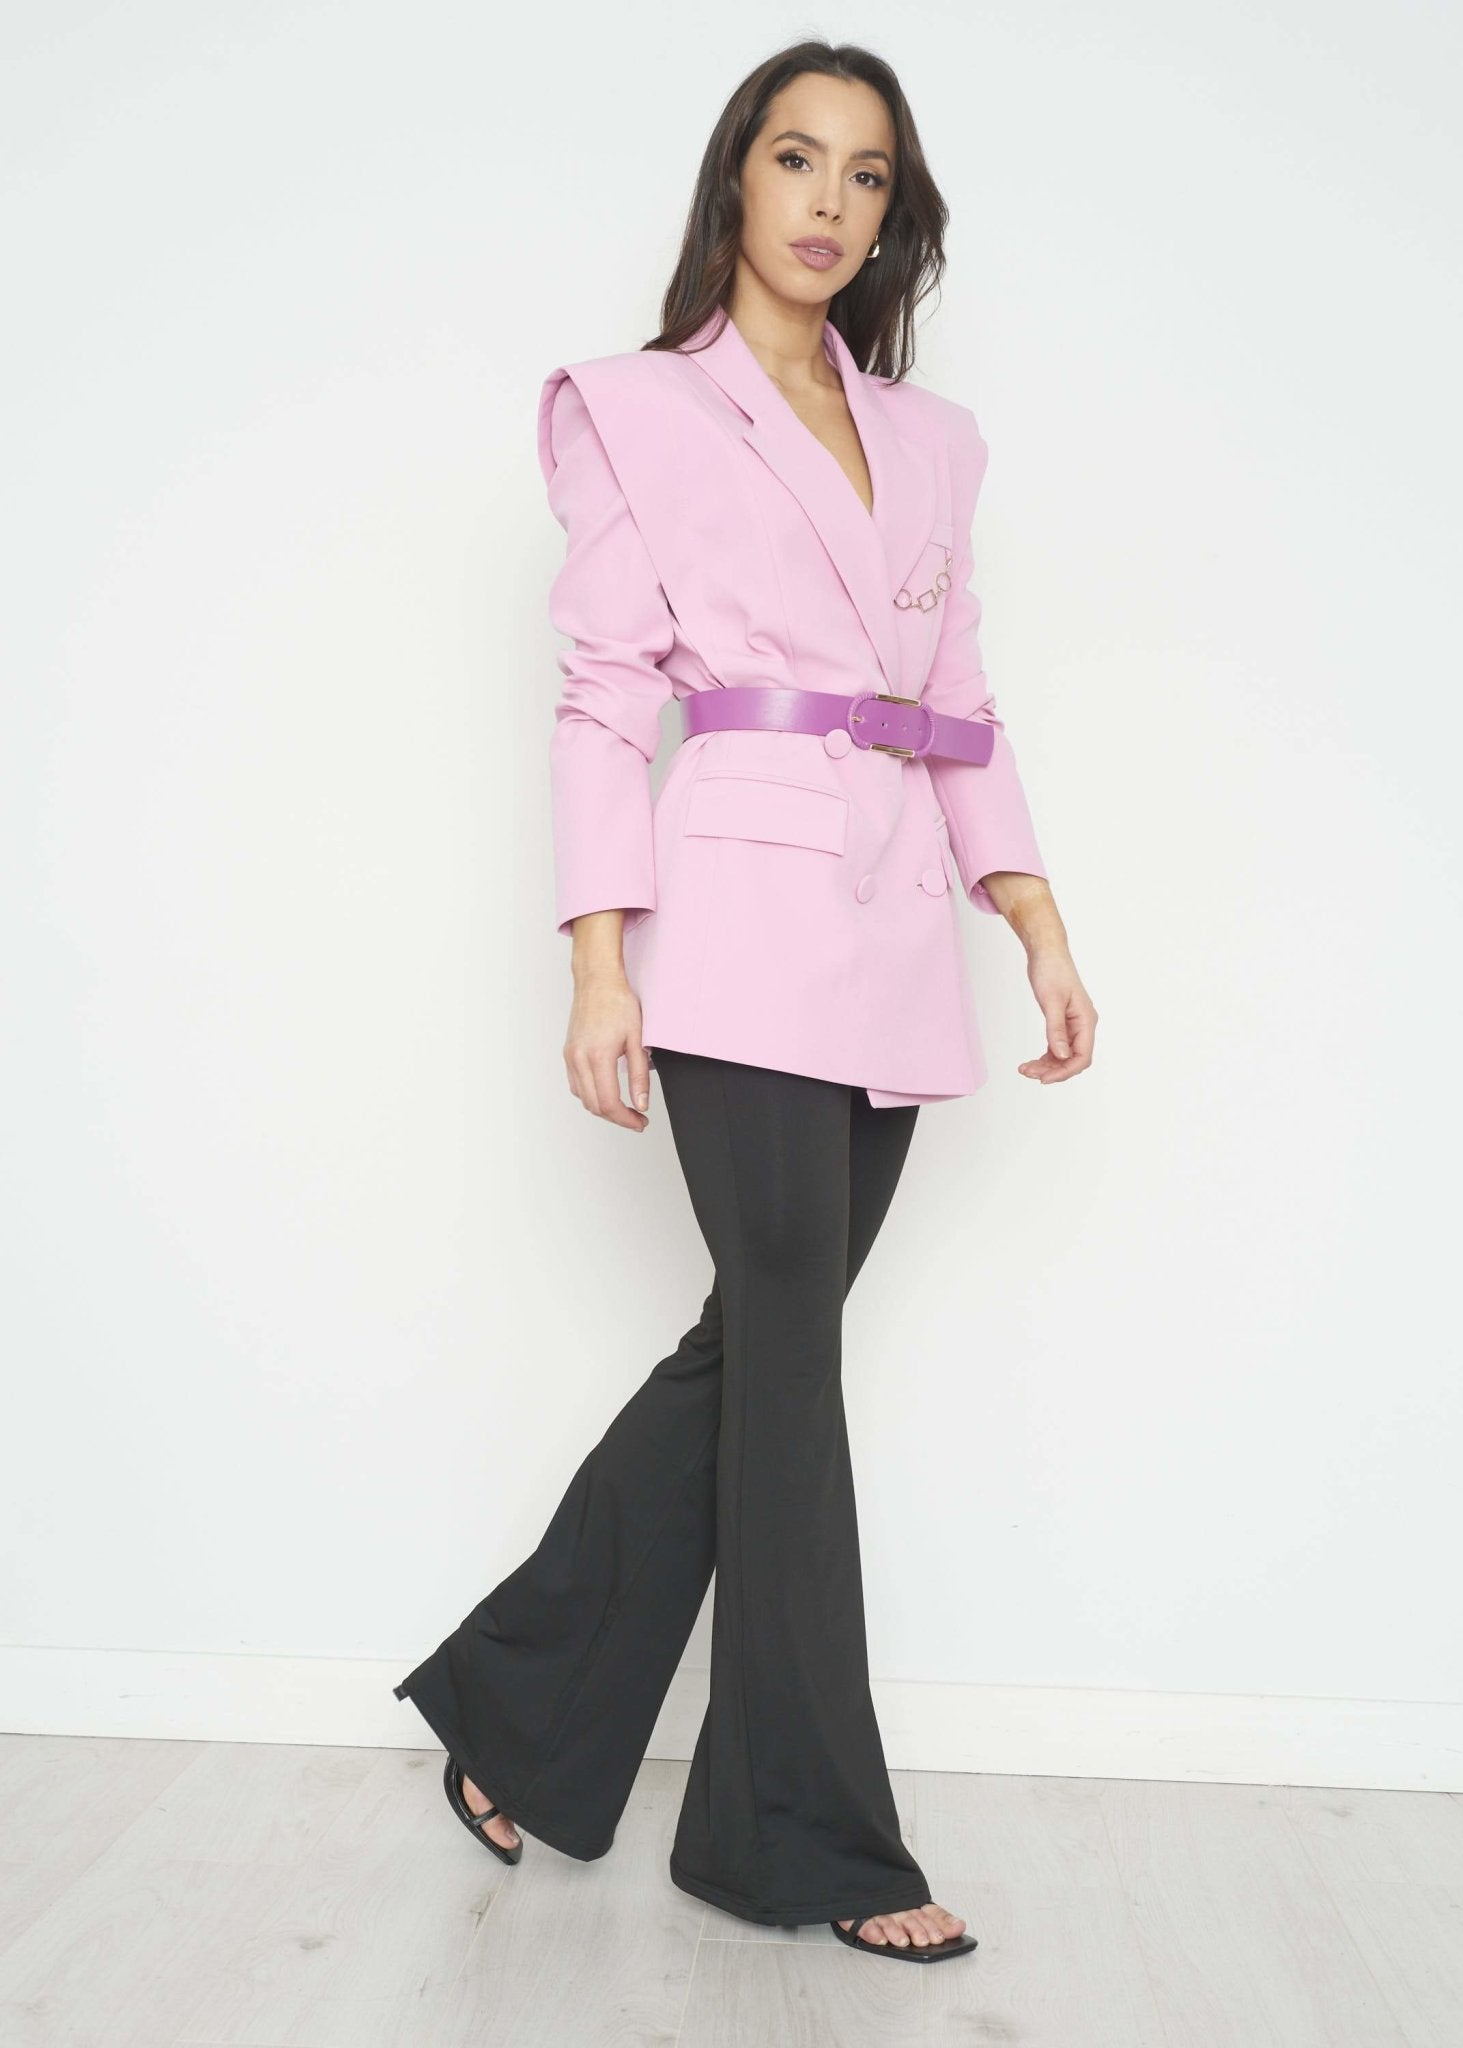 Savannah Shoulder Detail Blazer In Pink - The Walk in Wardrobe